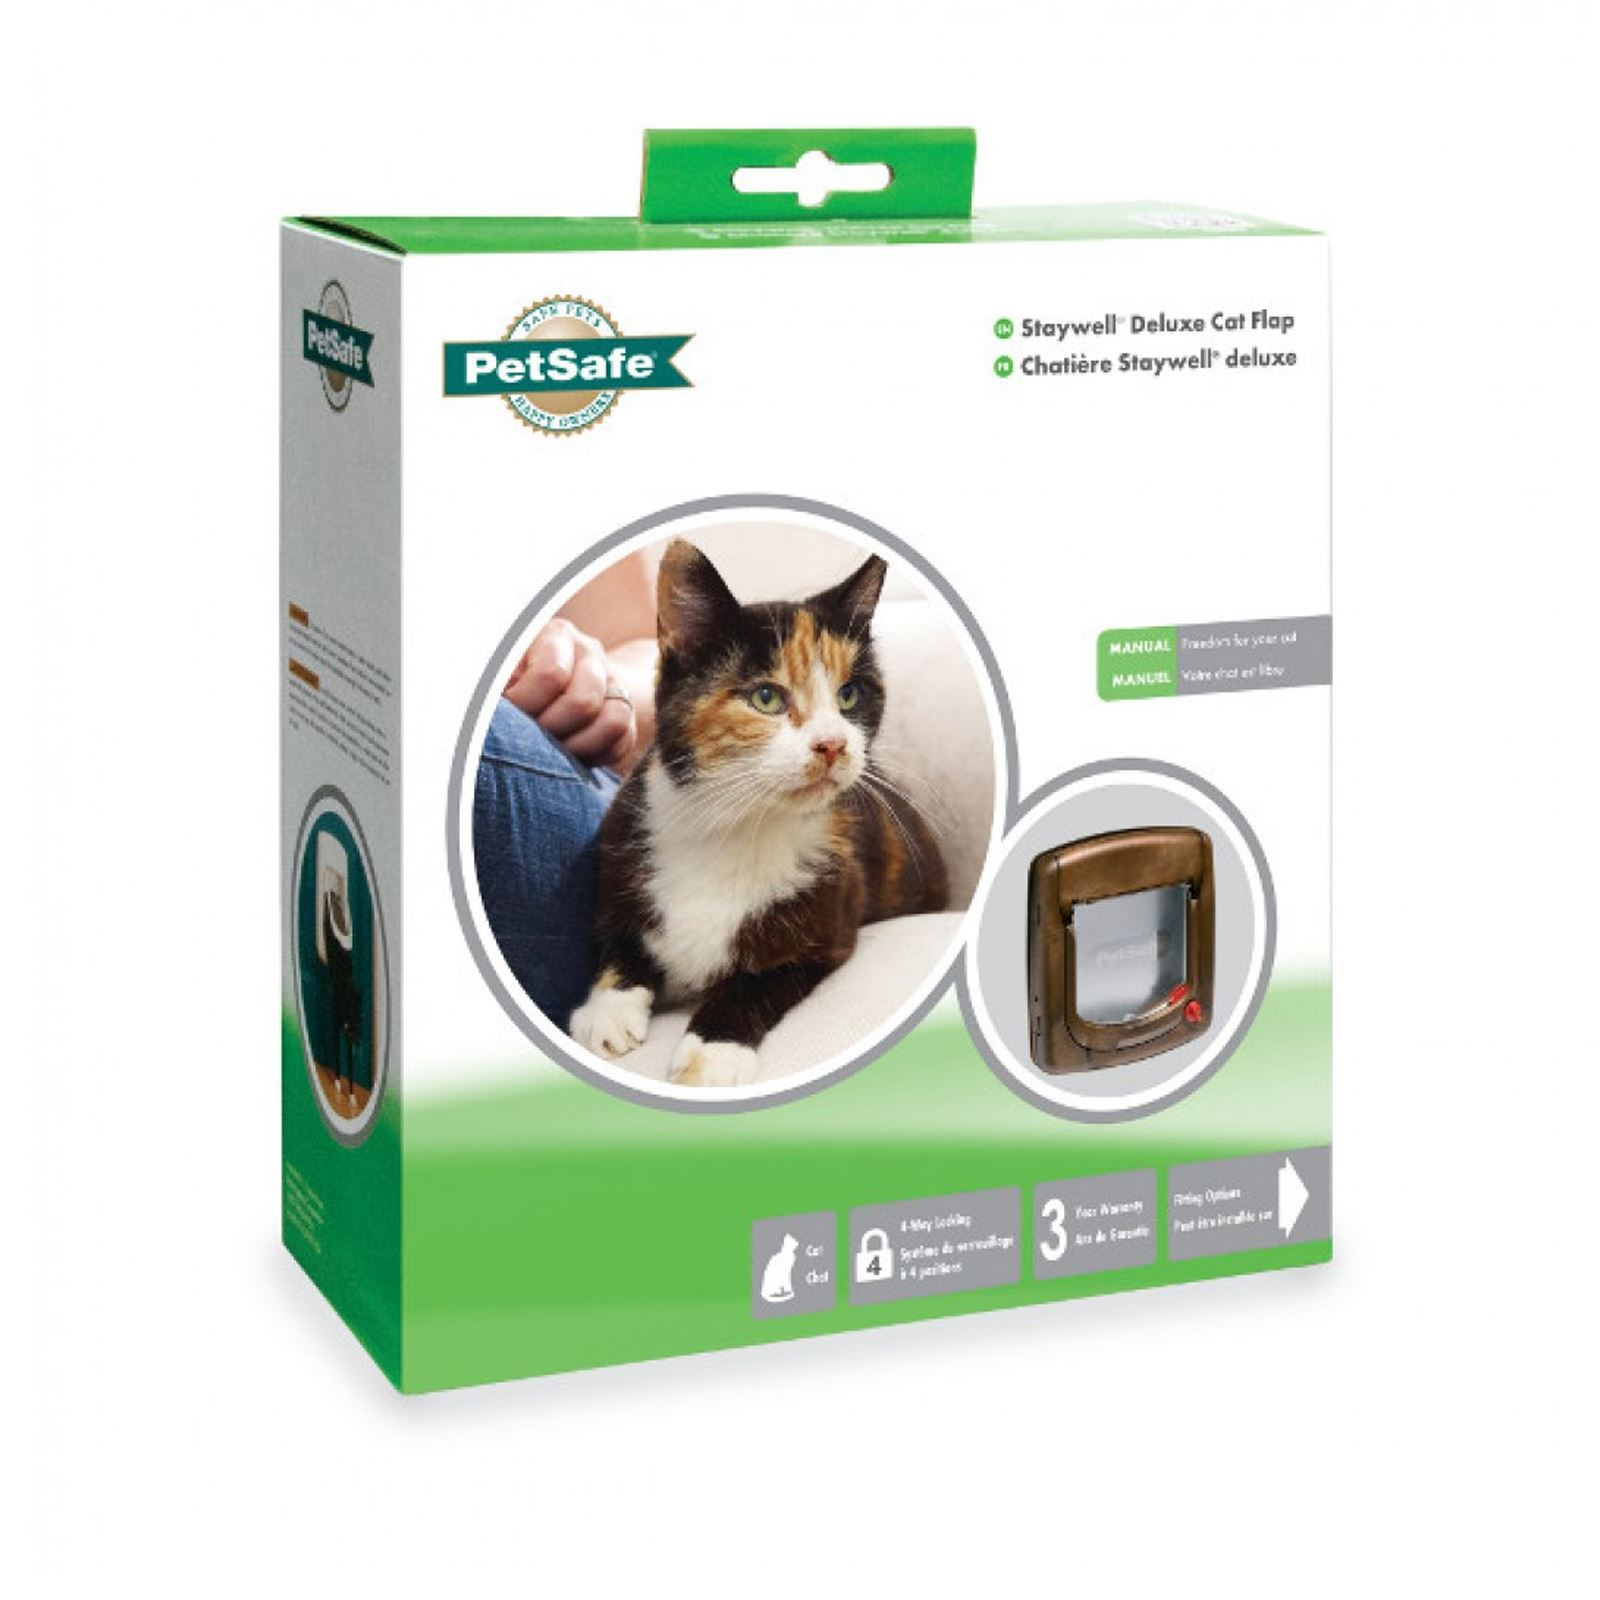 Cat-Flap-Petsafe-Staywell-Deluxe-4-Way-Locking-Cat-Door-Manual-Magnetic-catflap thumbnail 10